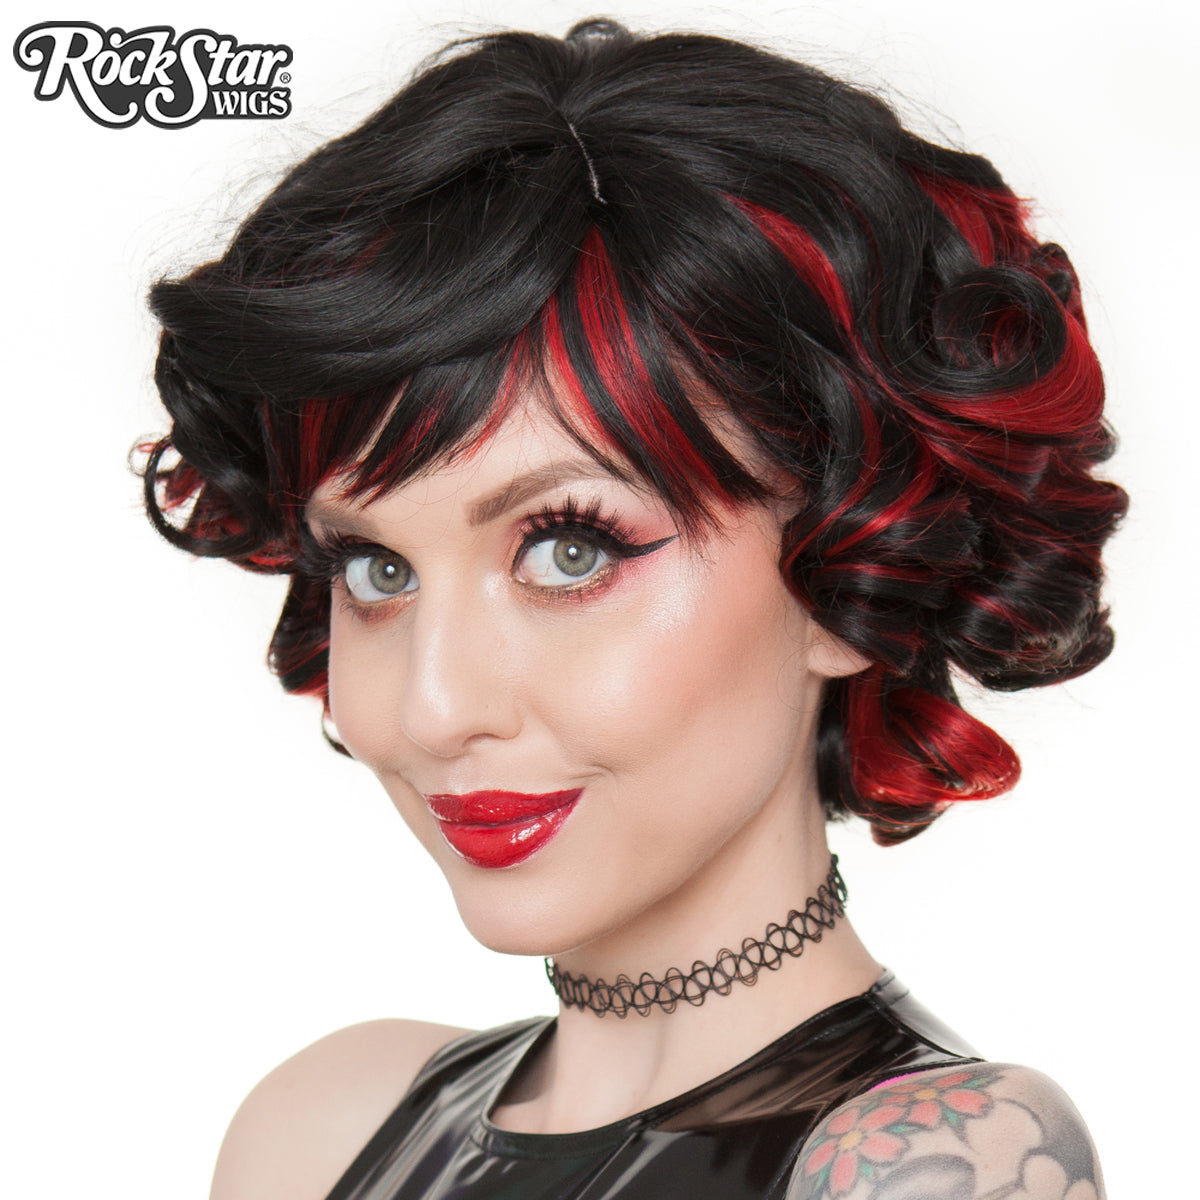 Gothic Lolita Wigs® <br> Curly Bob™ - Black & Red 00544